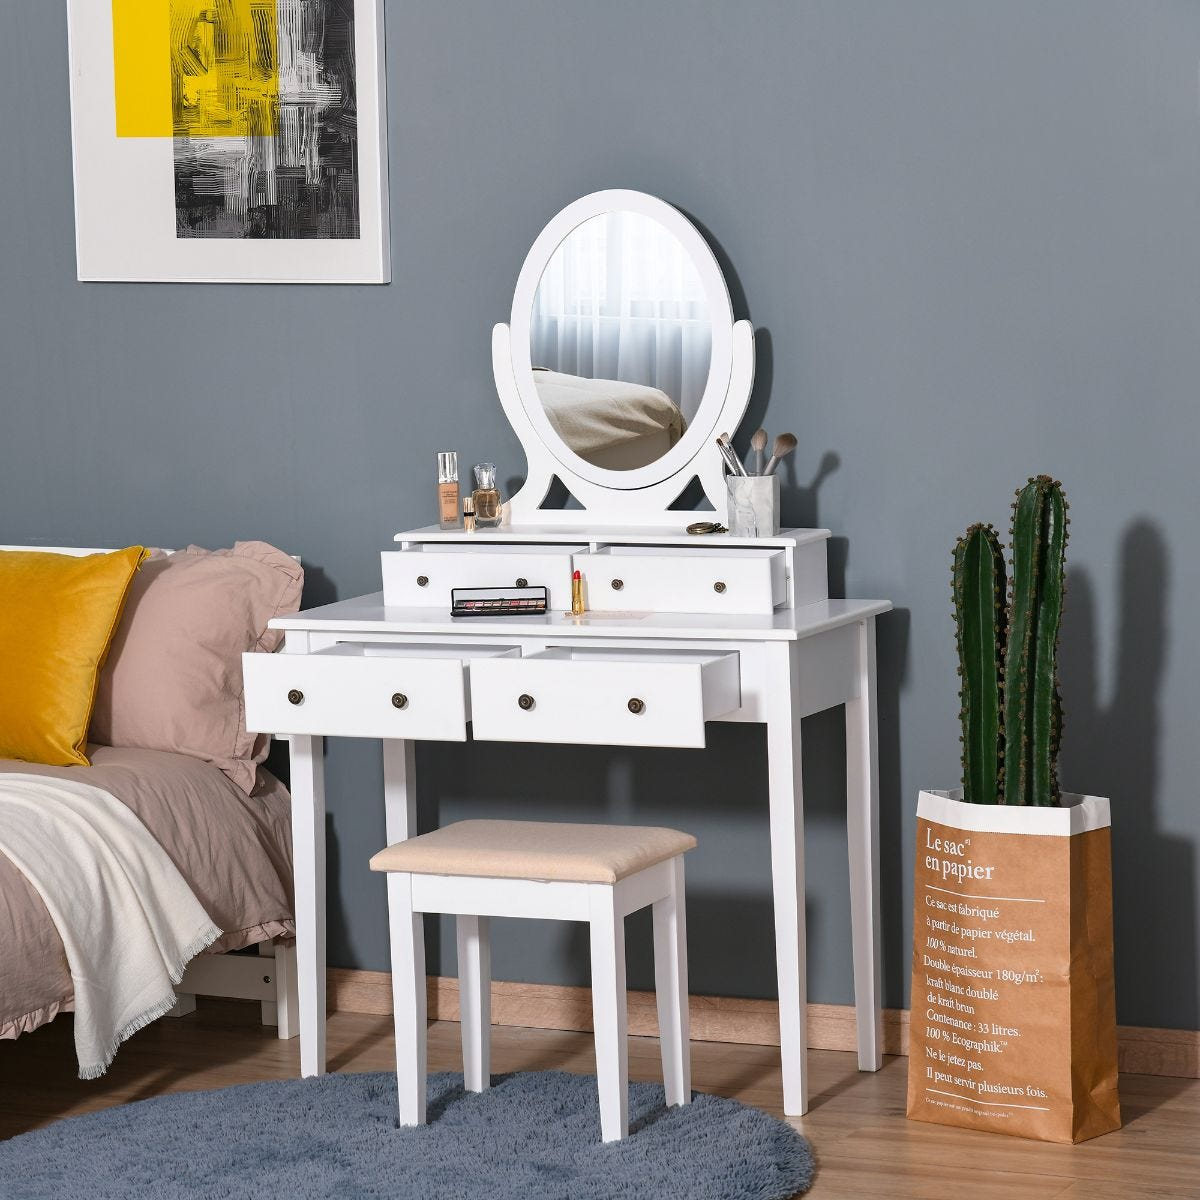 Four Drawer Dressing Table And Stool Set Mirror Cushioned Seat Wood Legs White